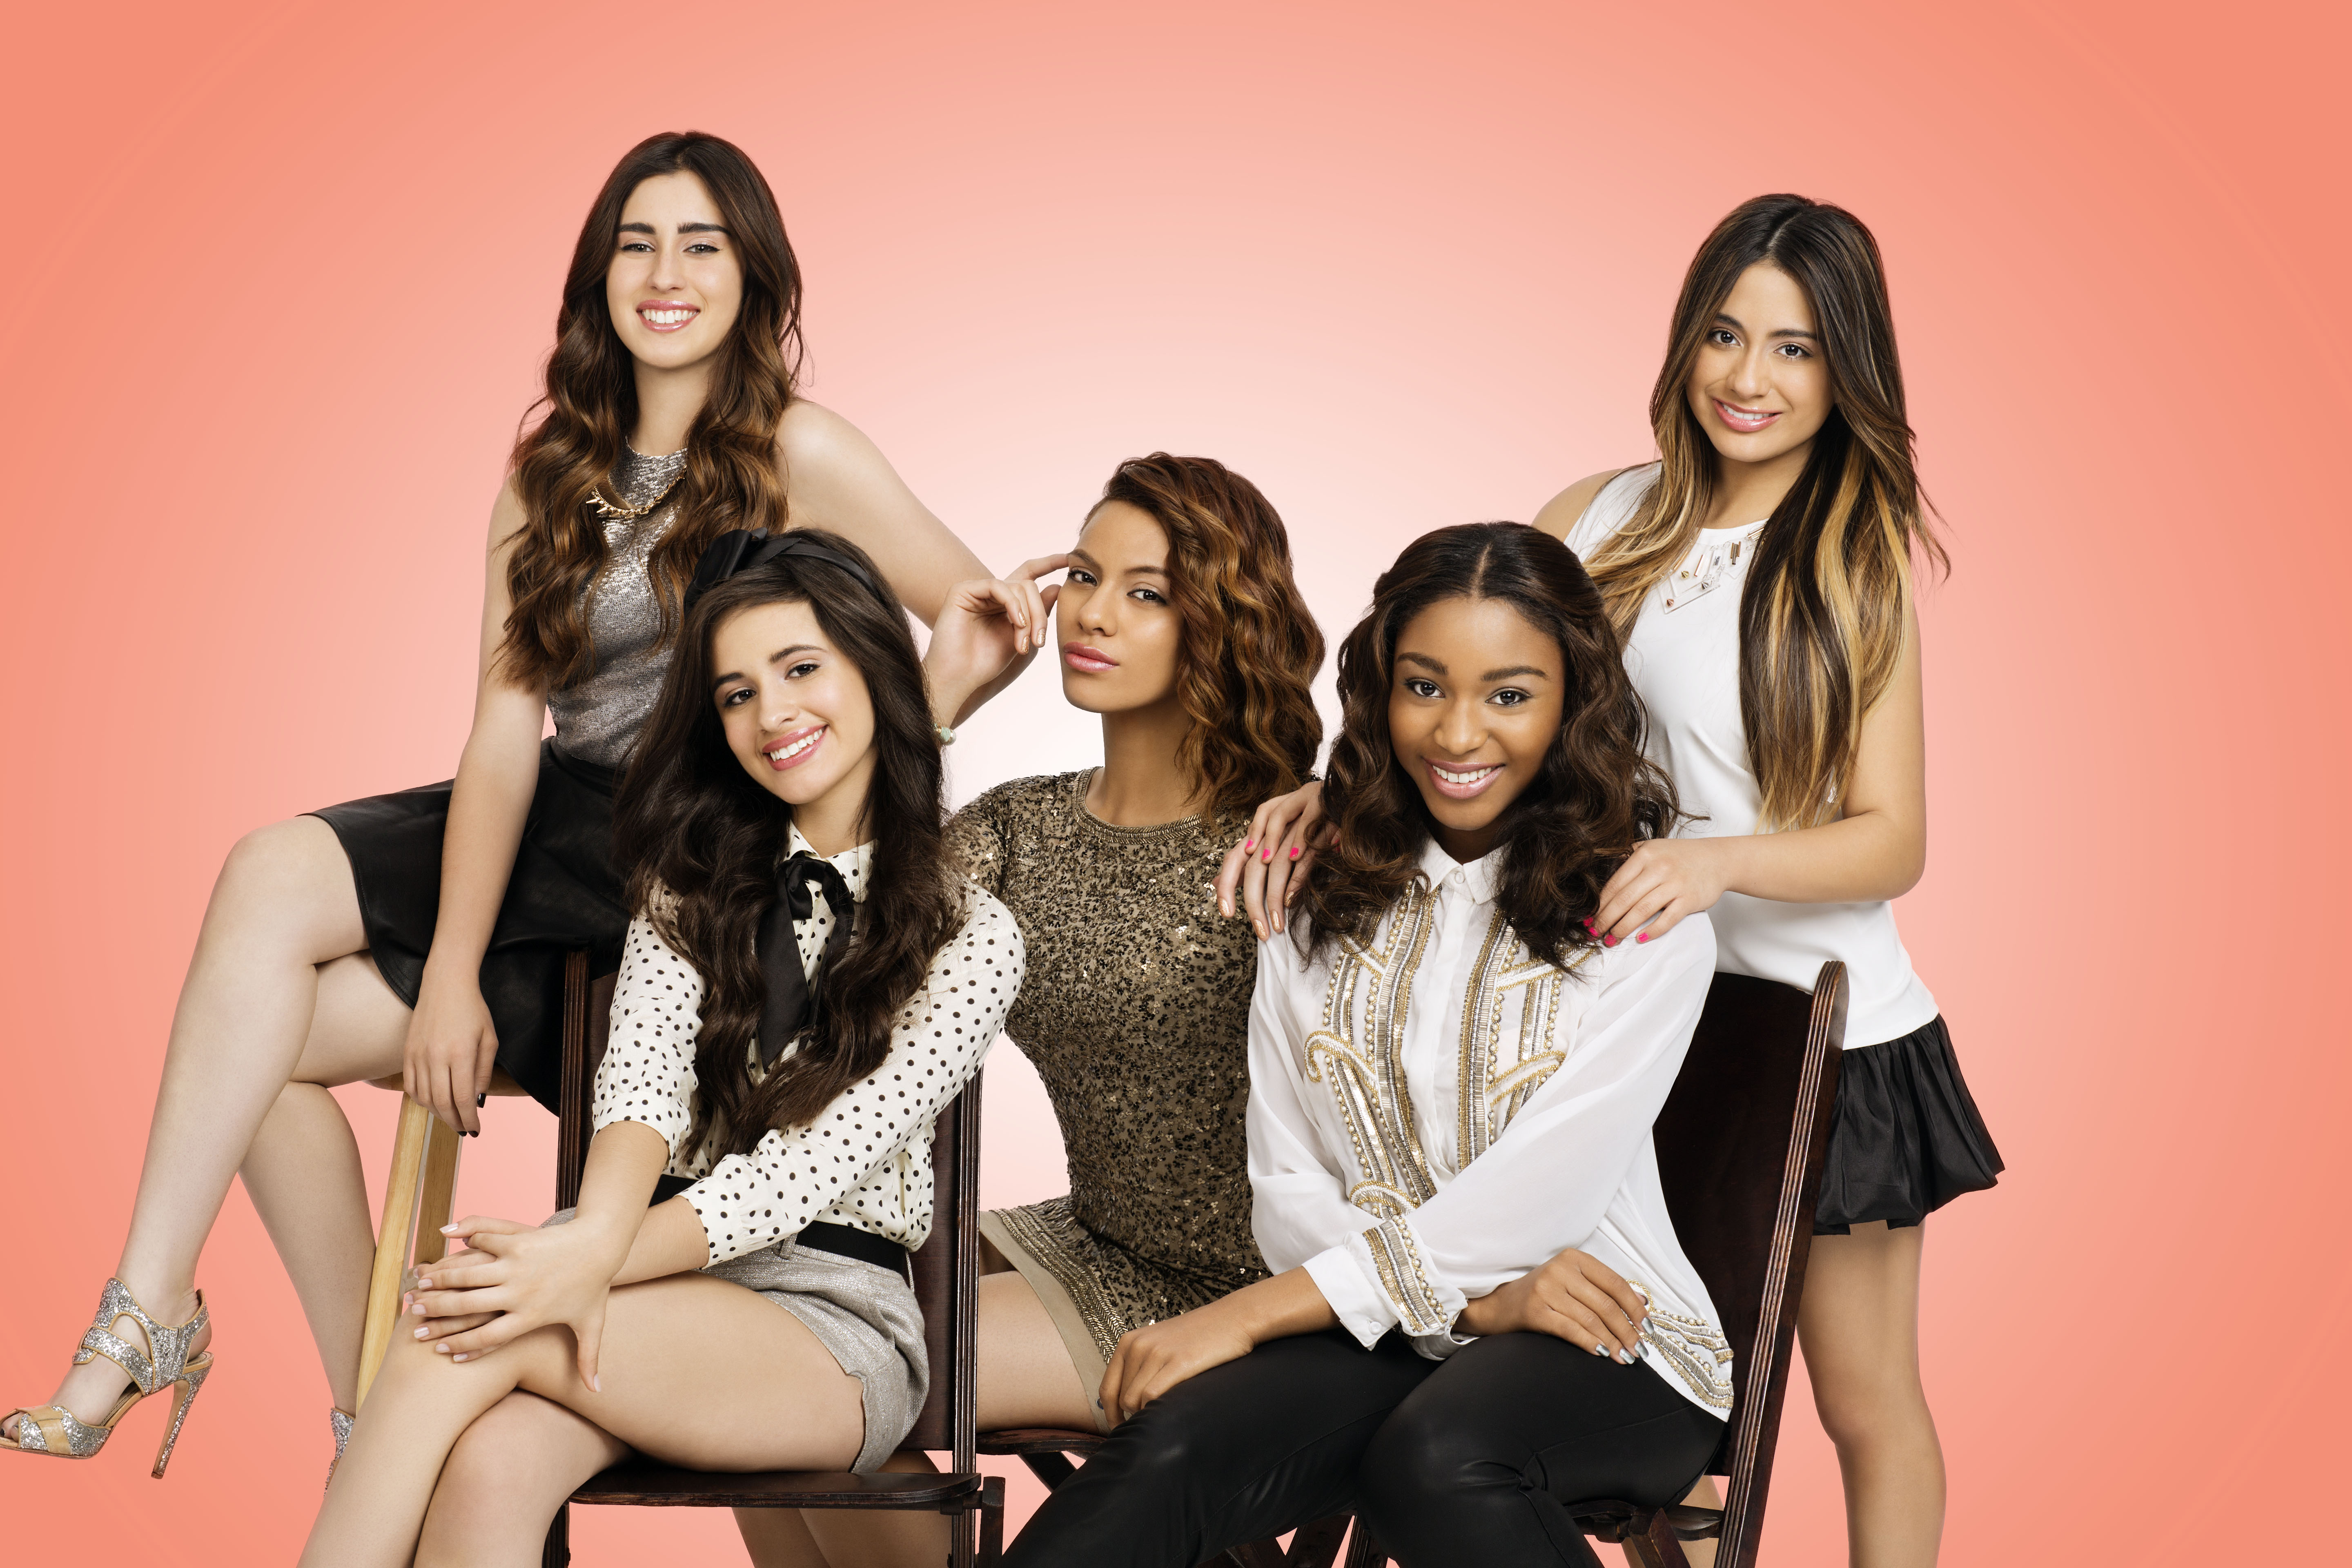 fifth-harmony-and-one-direction-dating